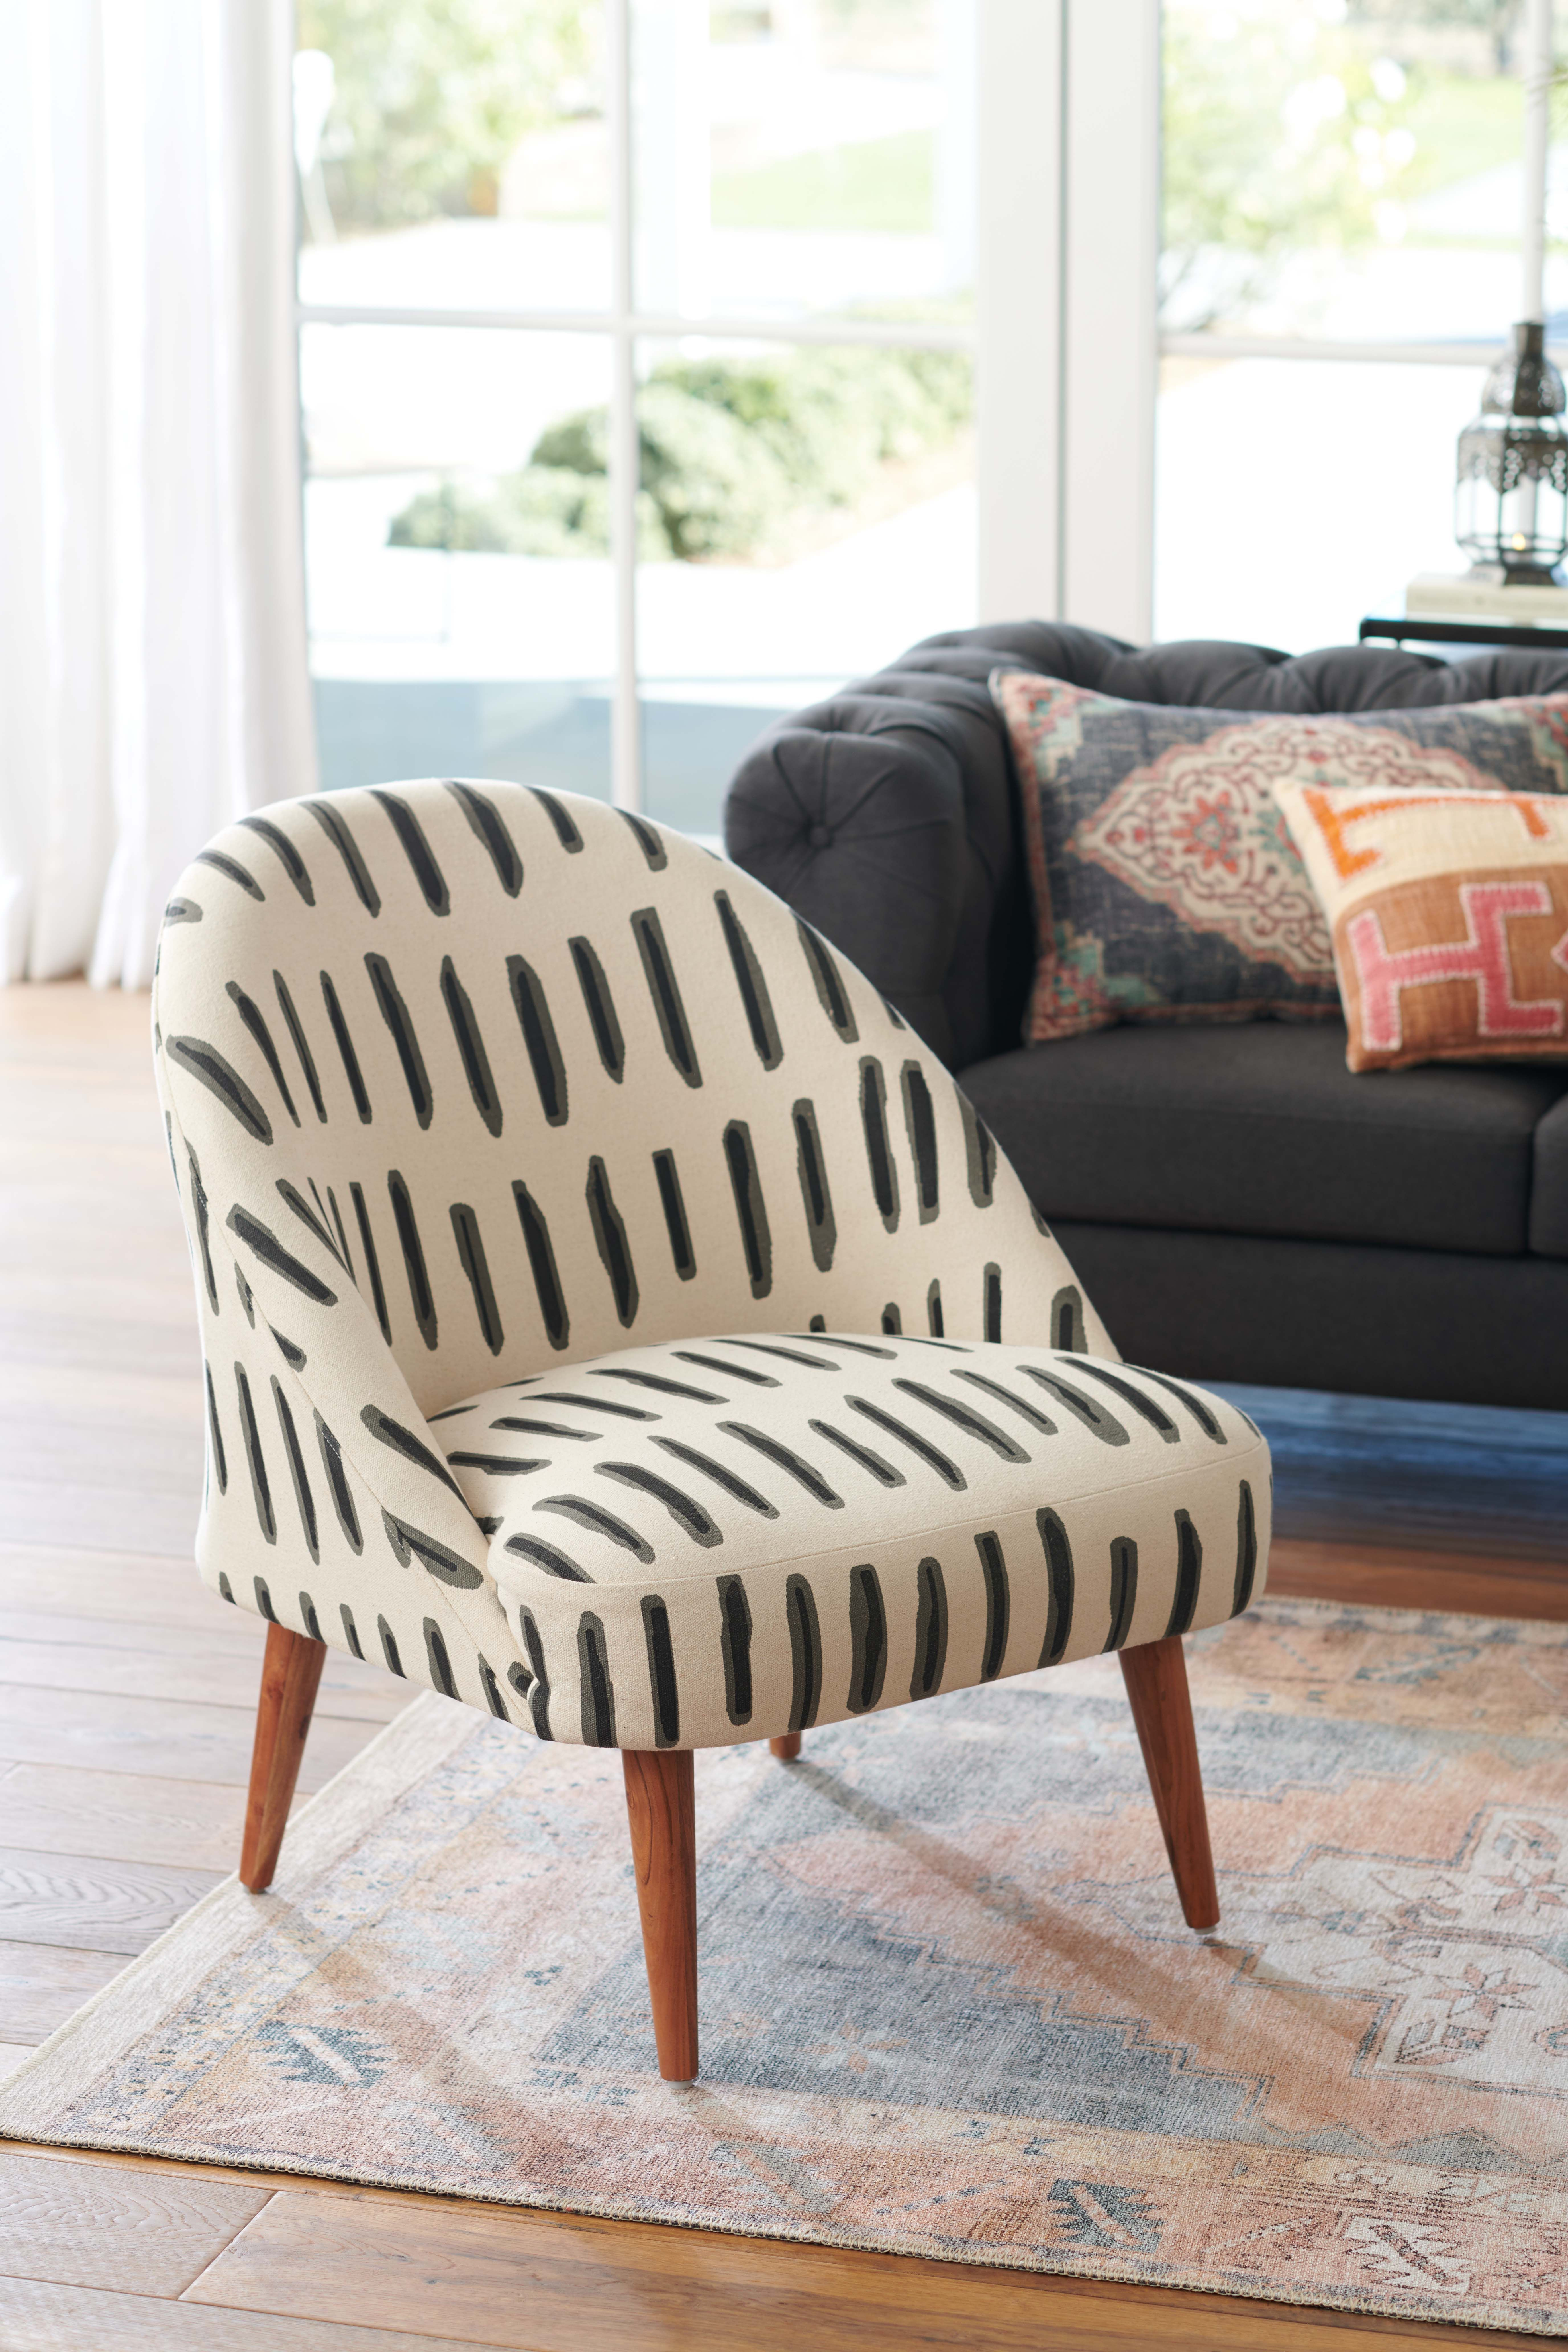 Charcoal Gray And Ivory Dash Print Noemi Tub Chair In 2020 Unique Living Room Furniture Living Room Furniture Sofas Furniture #printed #chairs #living #room